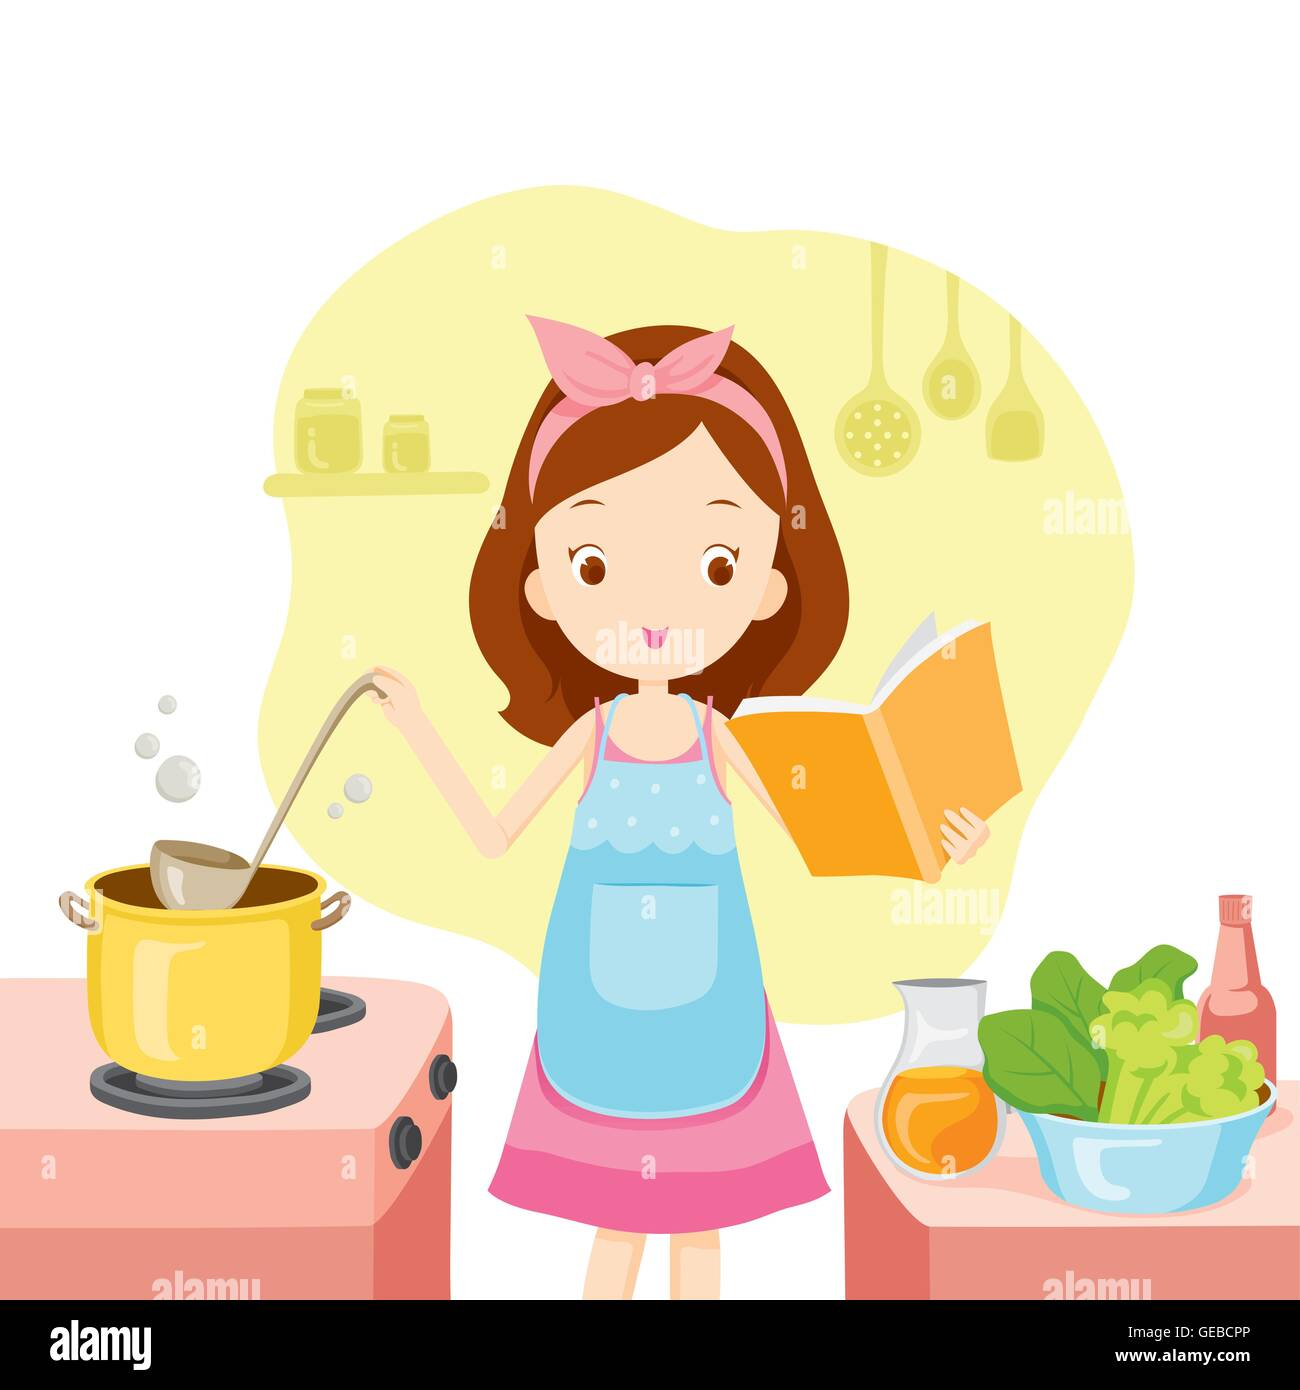 Selection of cartoons on cooking kitchens food and eating - Girl Cooking Soup With Cookbook Kitchen Kitchenware Crockery Cooking Food Bakery Occupation Lifestyle